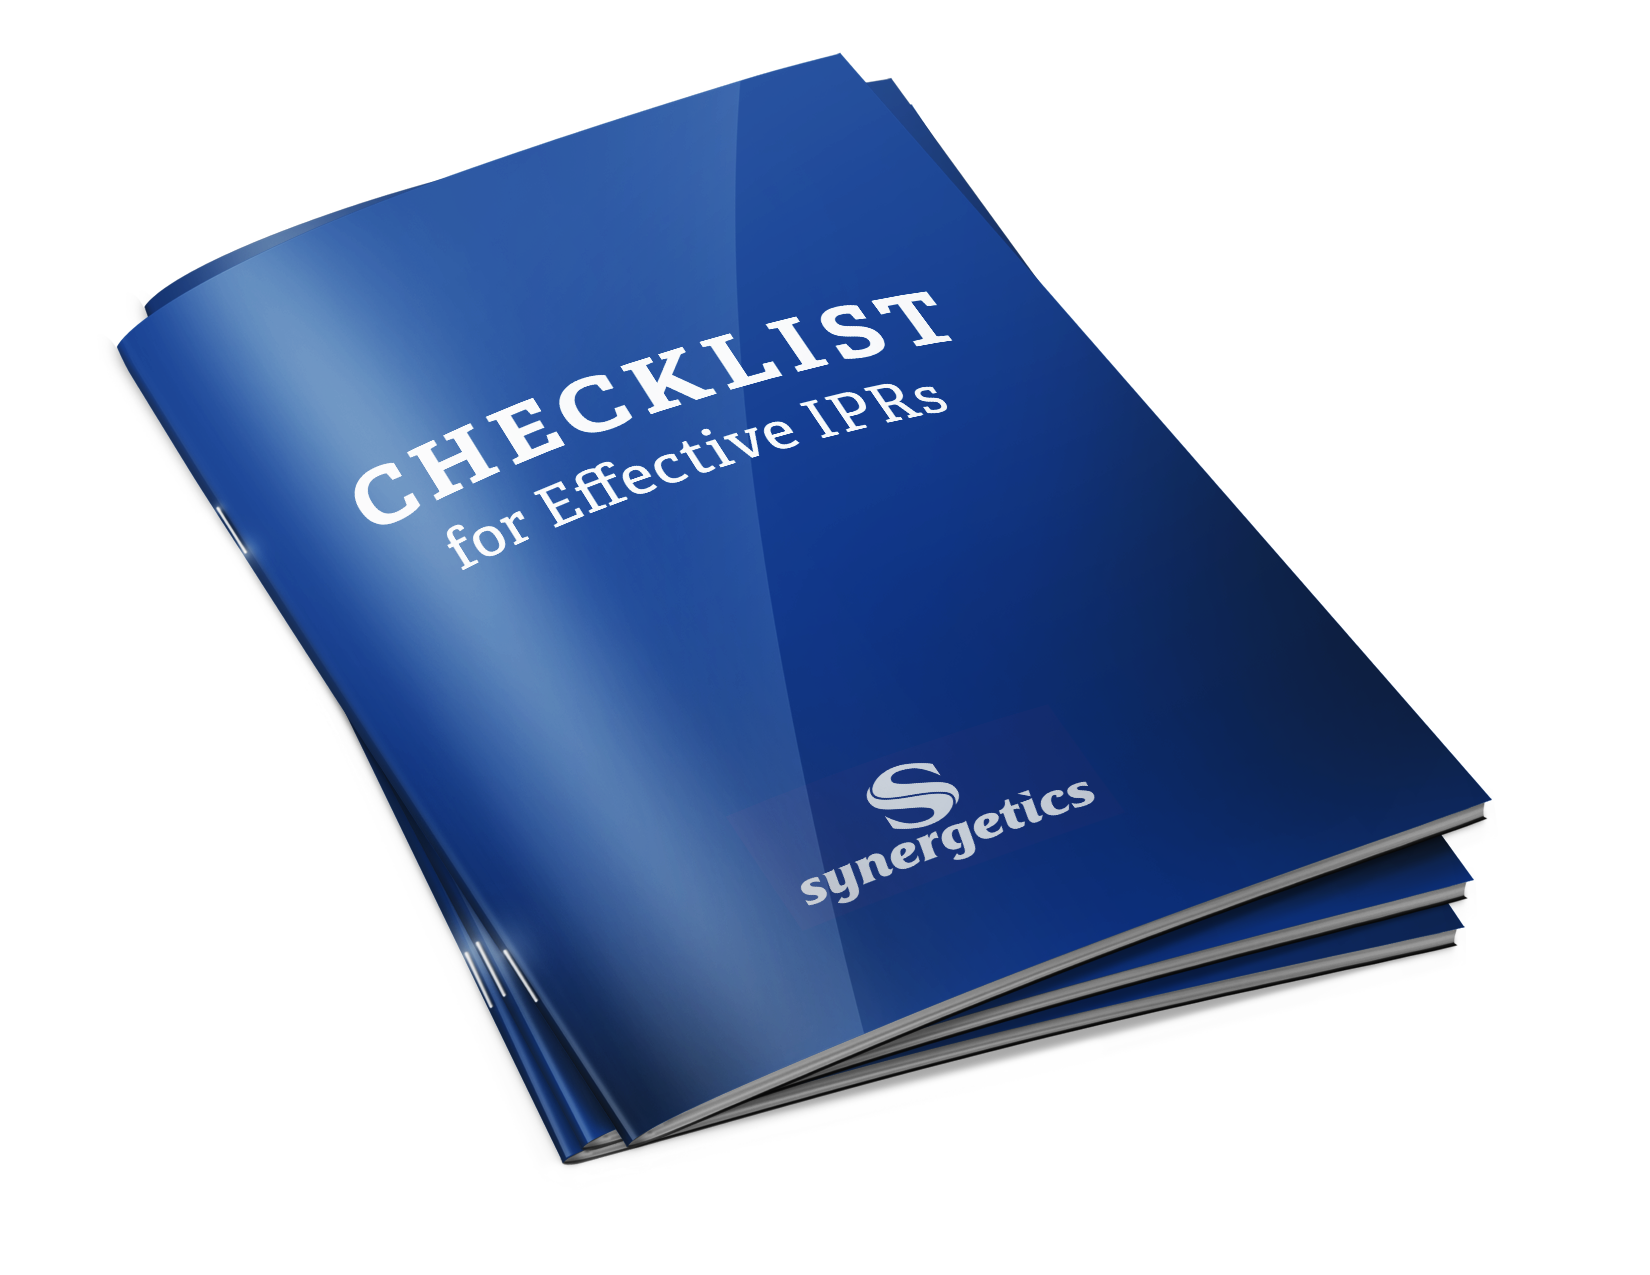 checklist-for-successful-IPRs.png